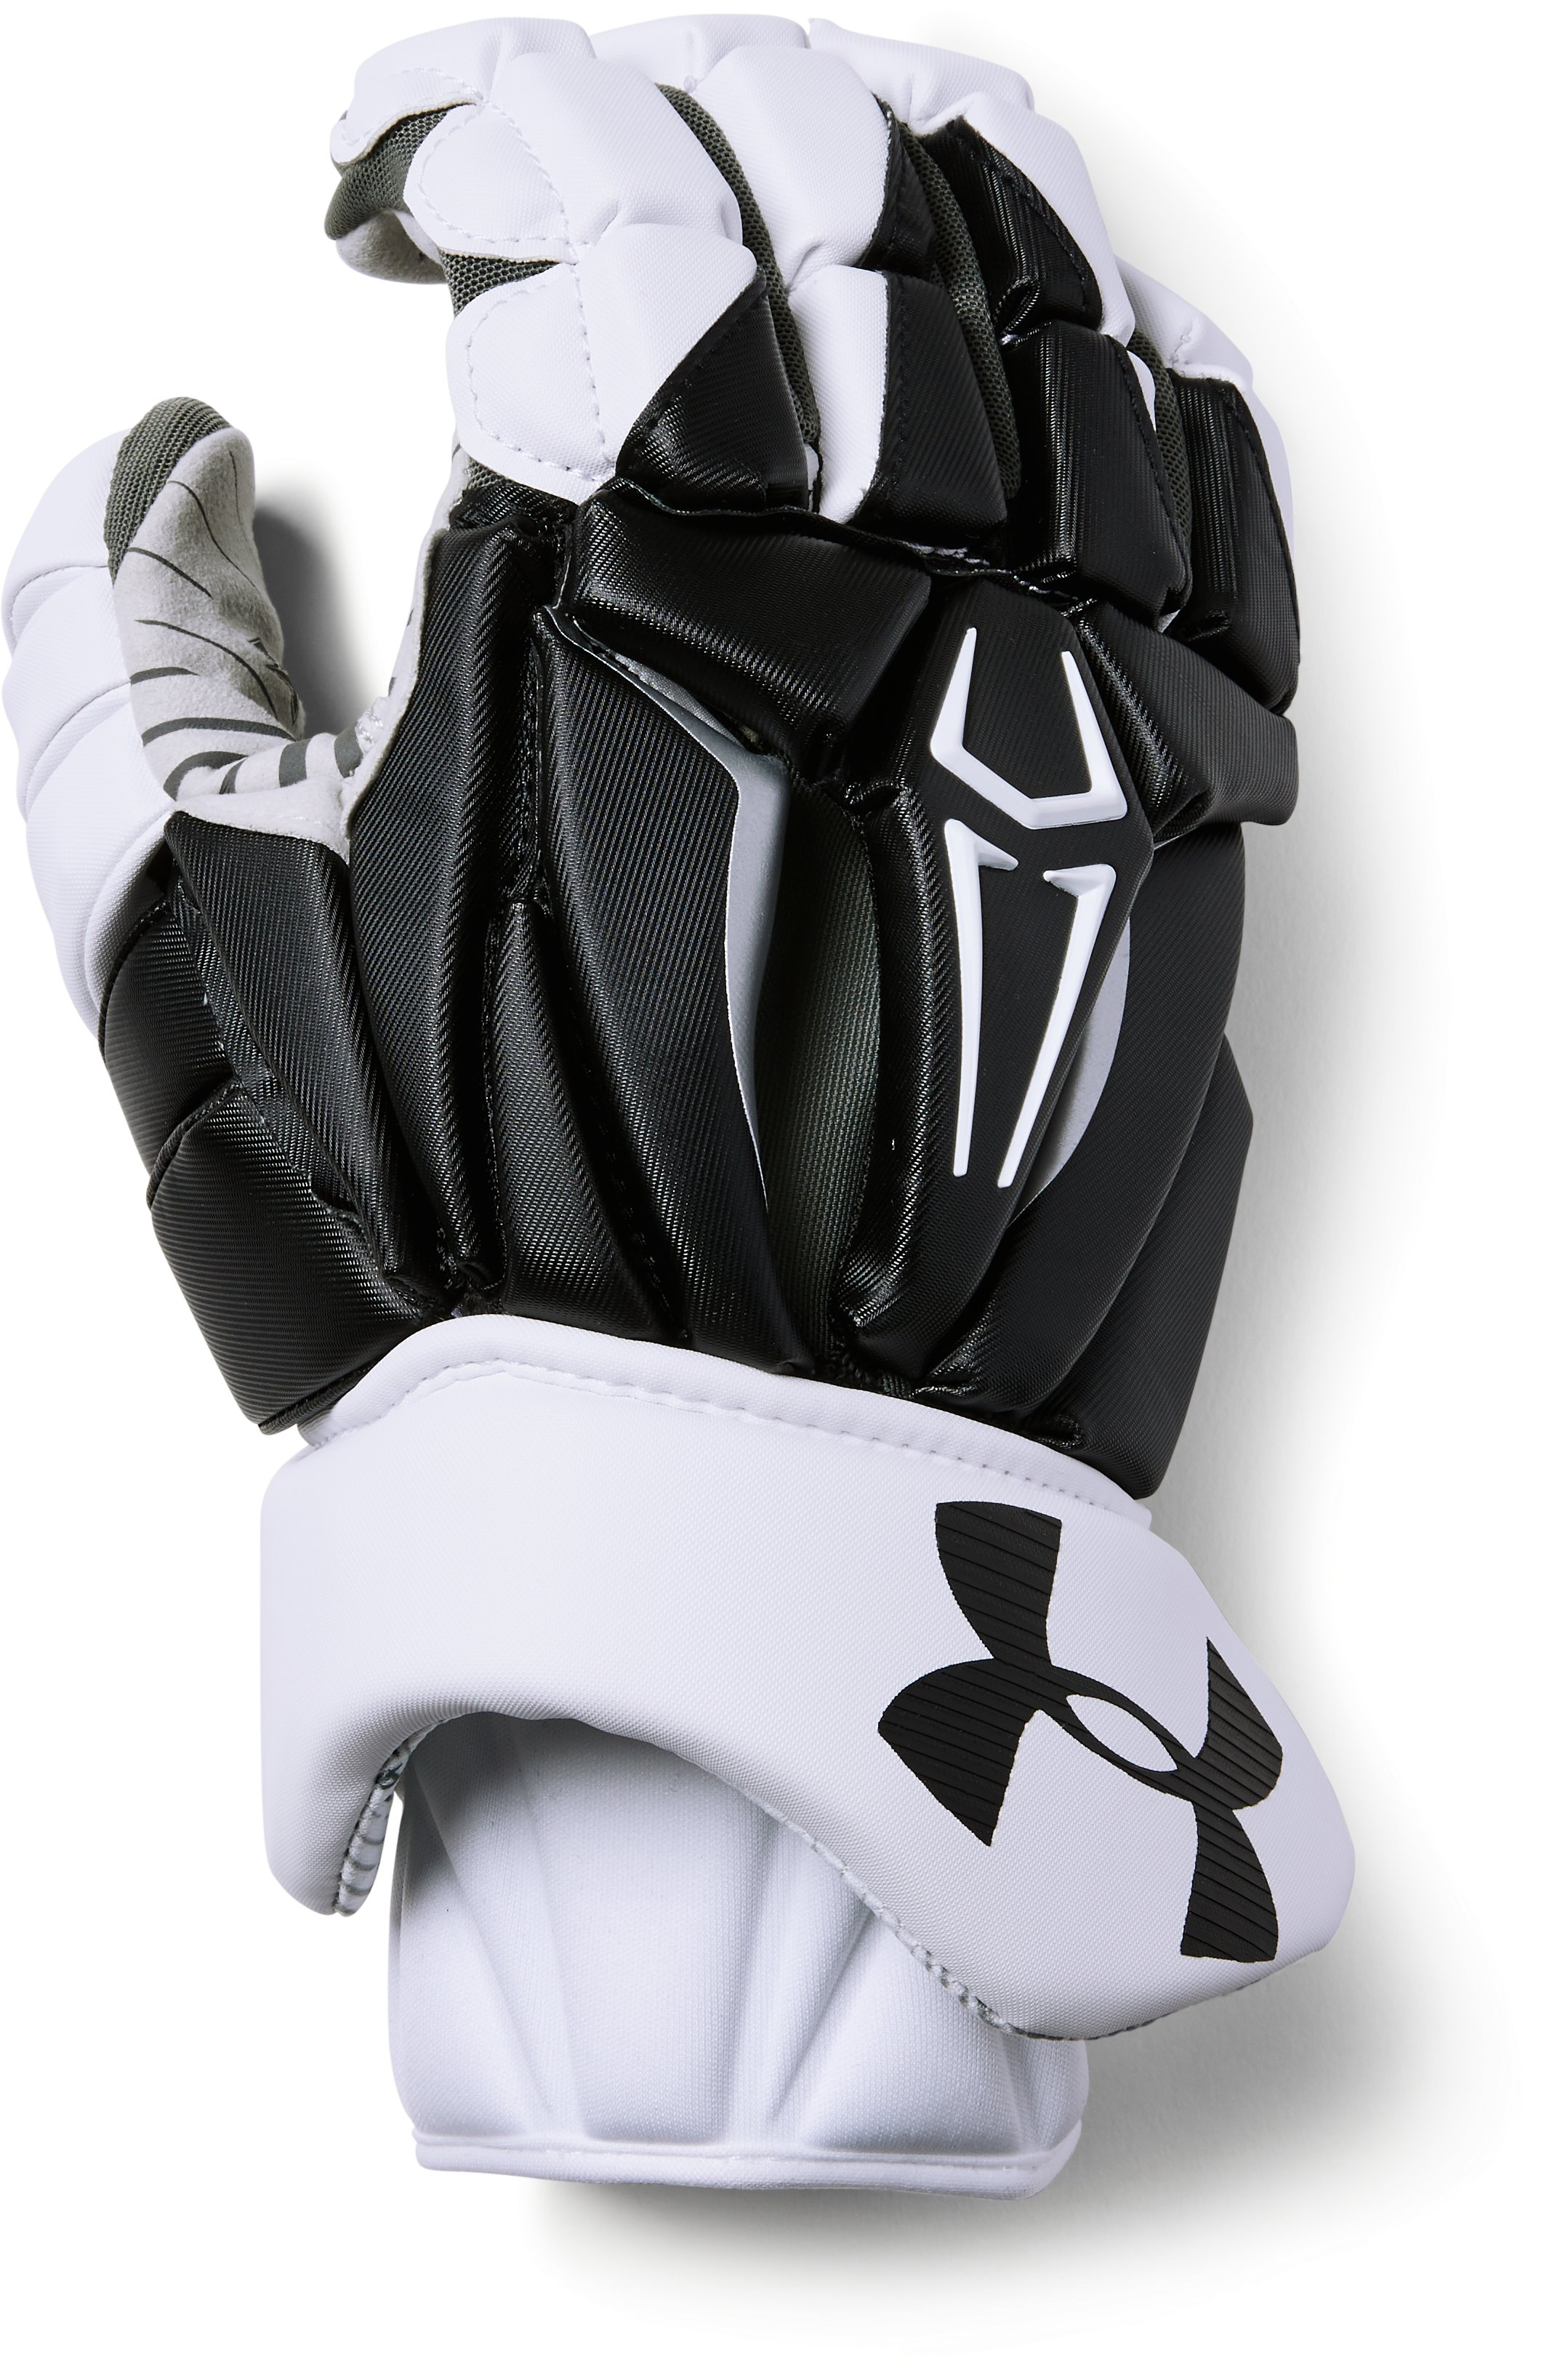 winter lacrosse gloves Men's UA Command Pro 2.0 Lacrosse Gloves <strong>Large</strong>: 13'' (Recommended For Ages 13+ )